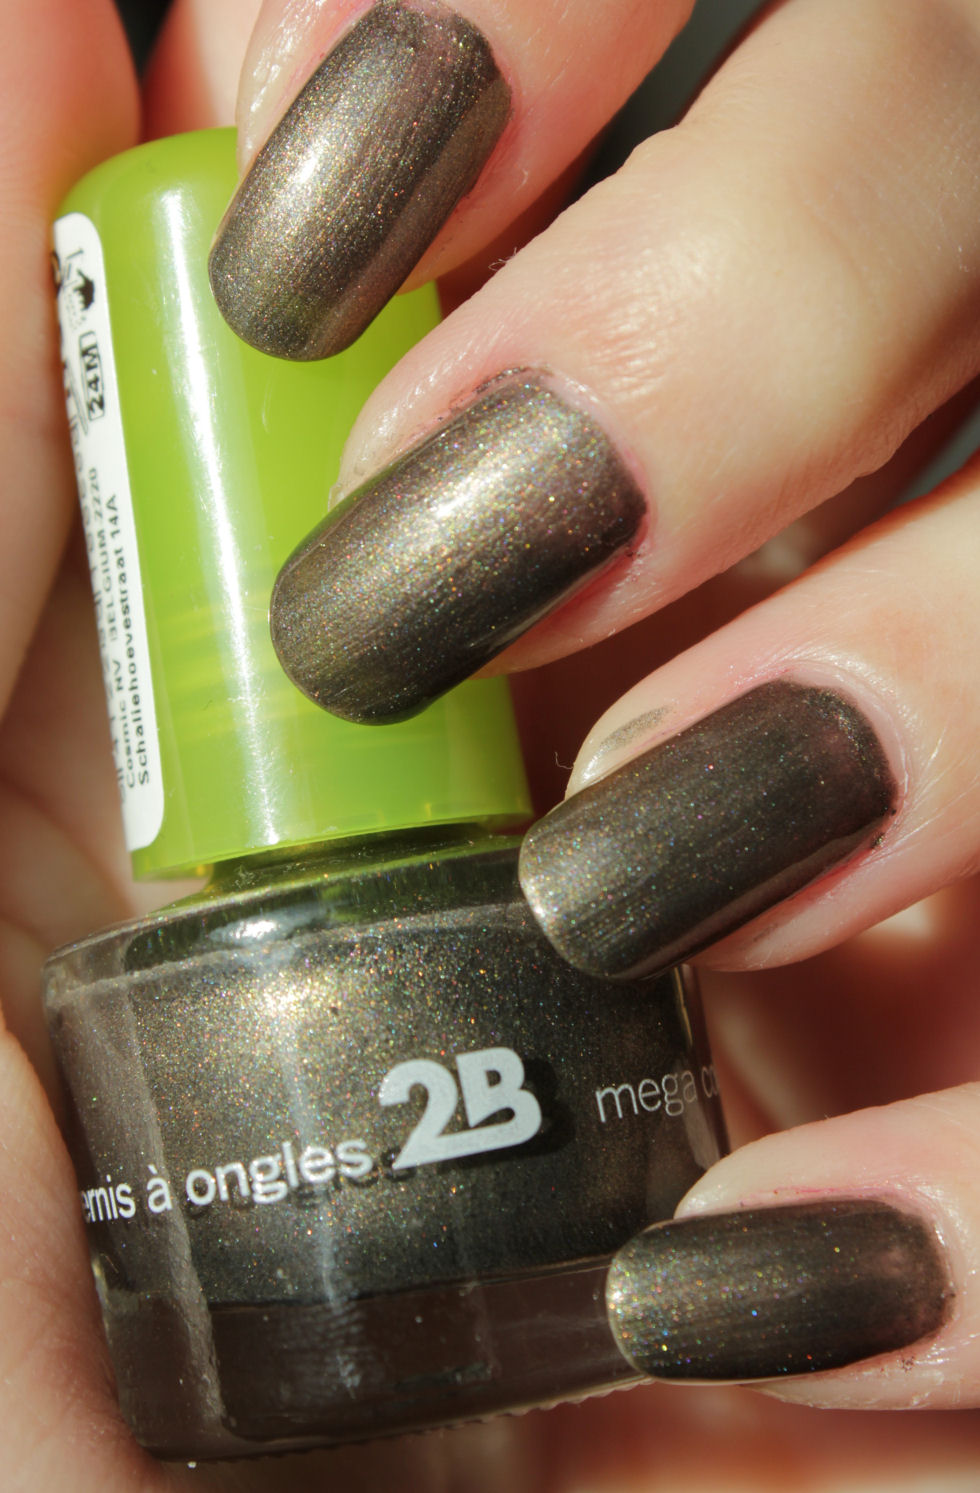 http://lacquediction.blogspot.de/2015/06/2b-mega-colours-nail-polish-60.html